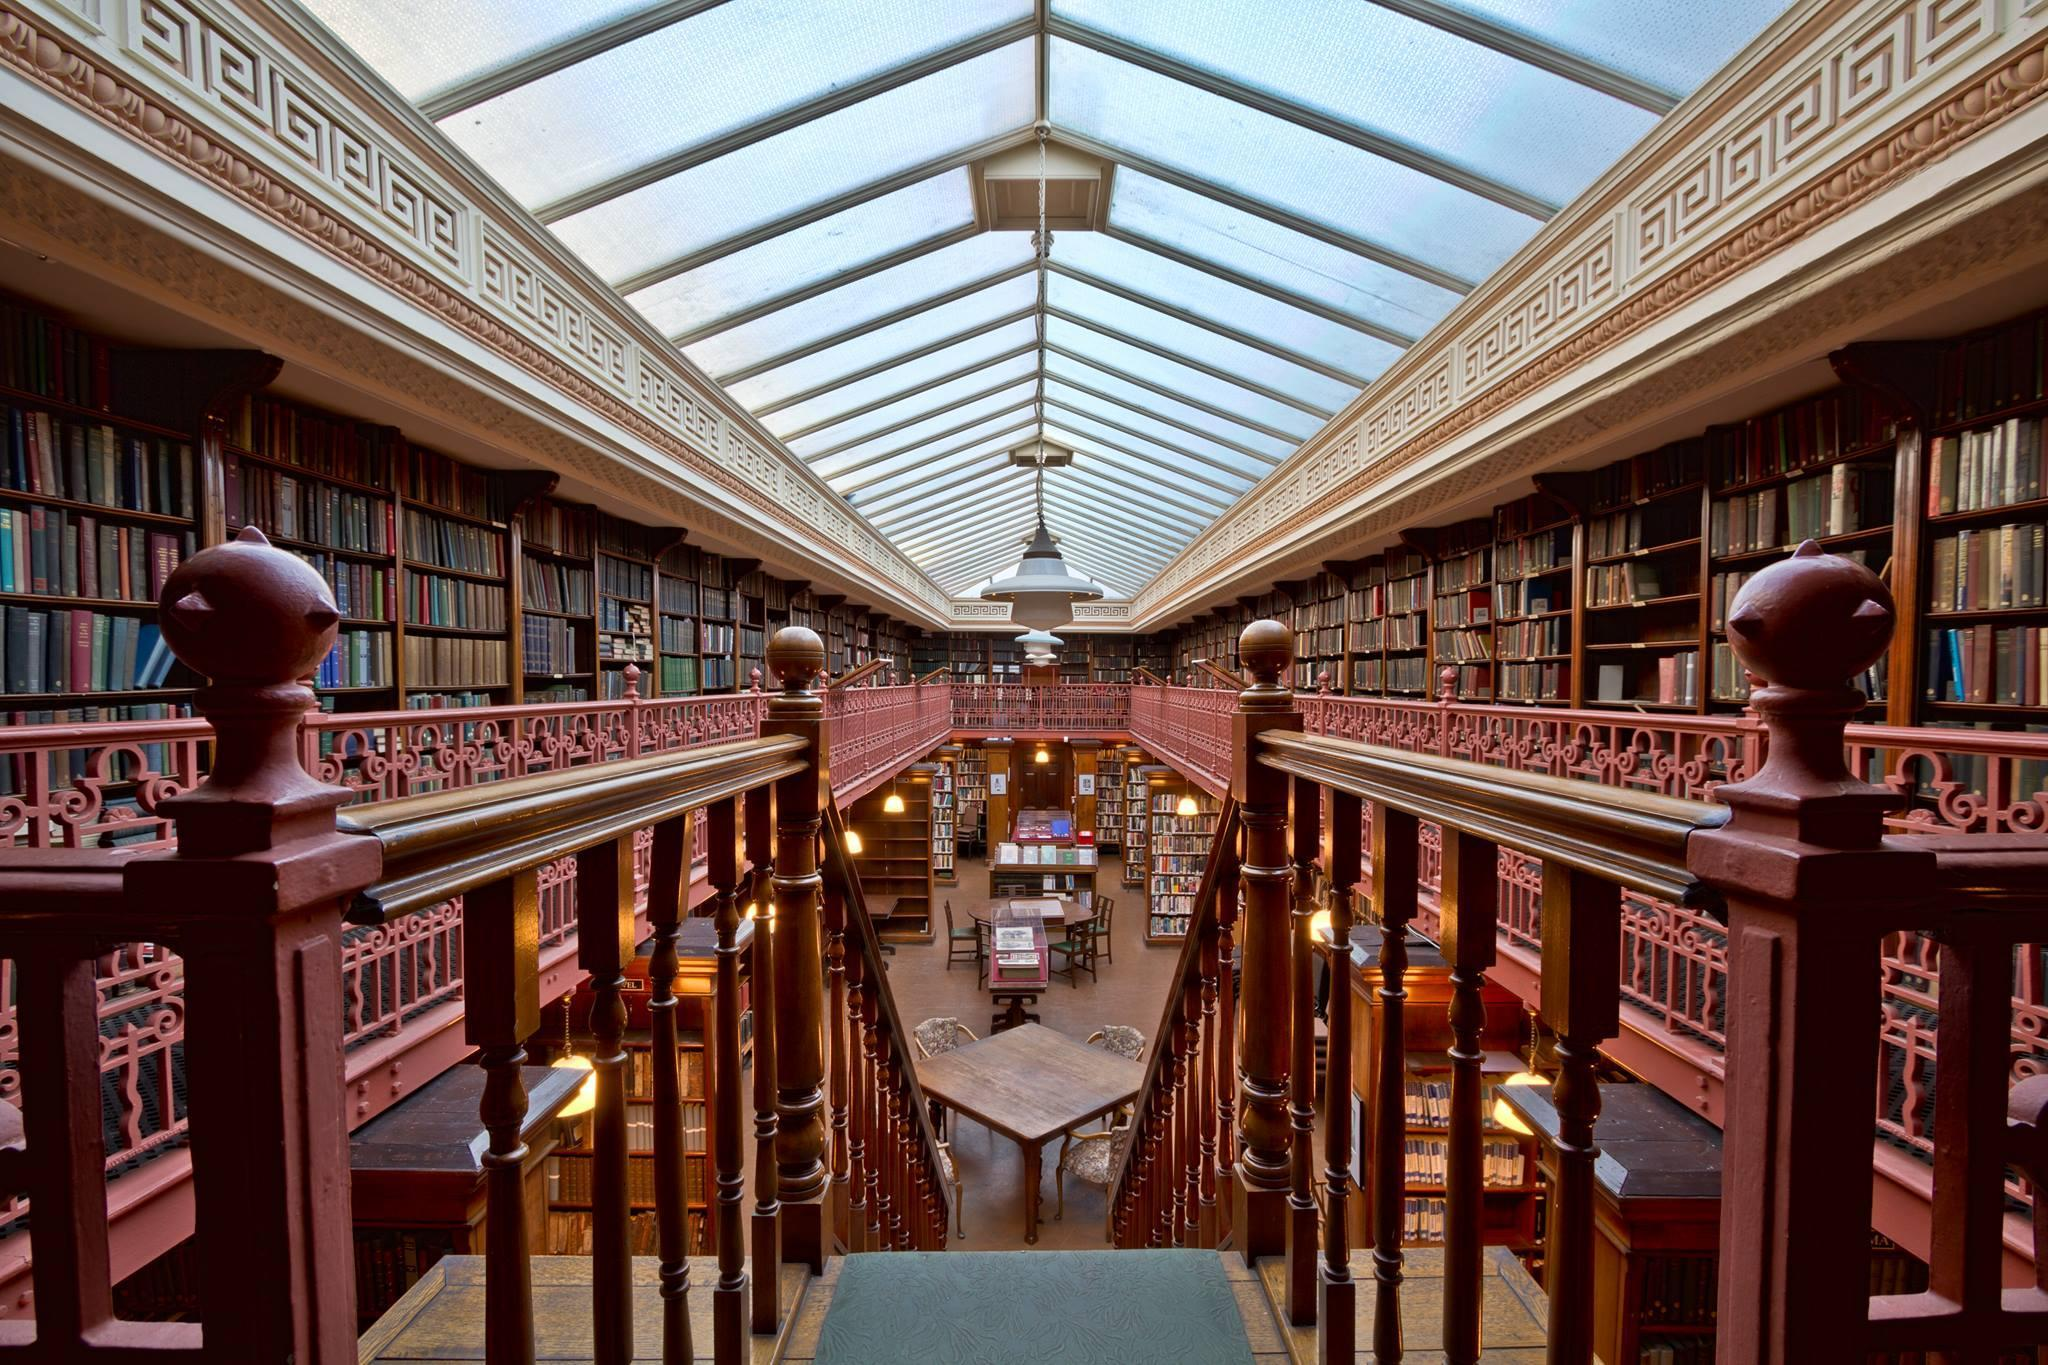 Tour of The Leeds Library